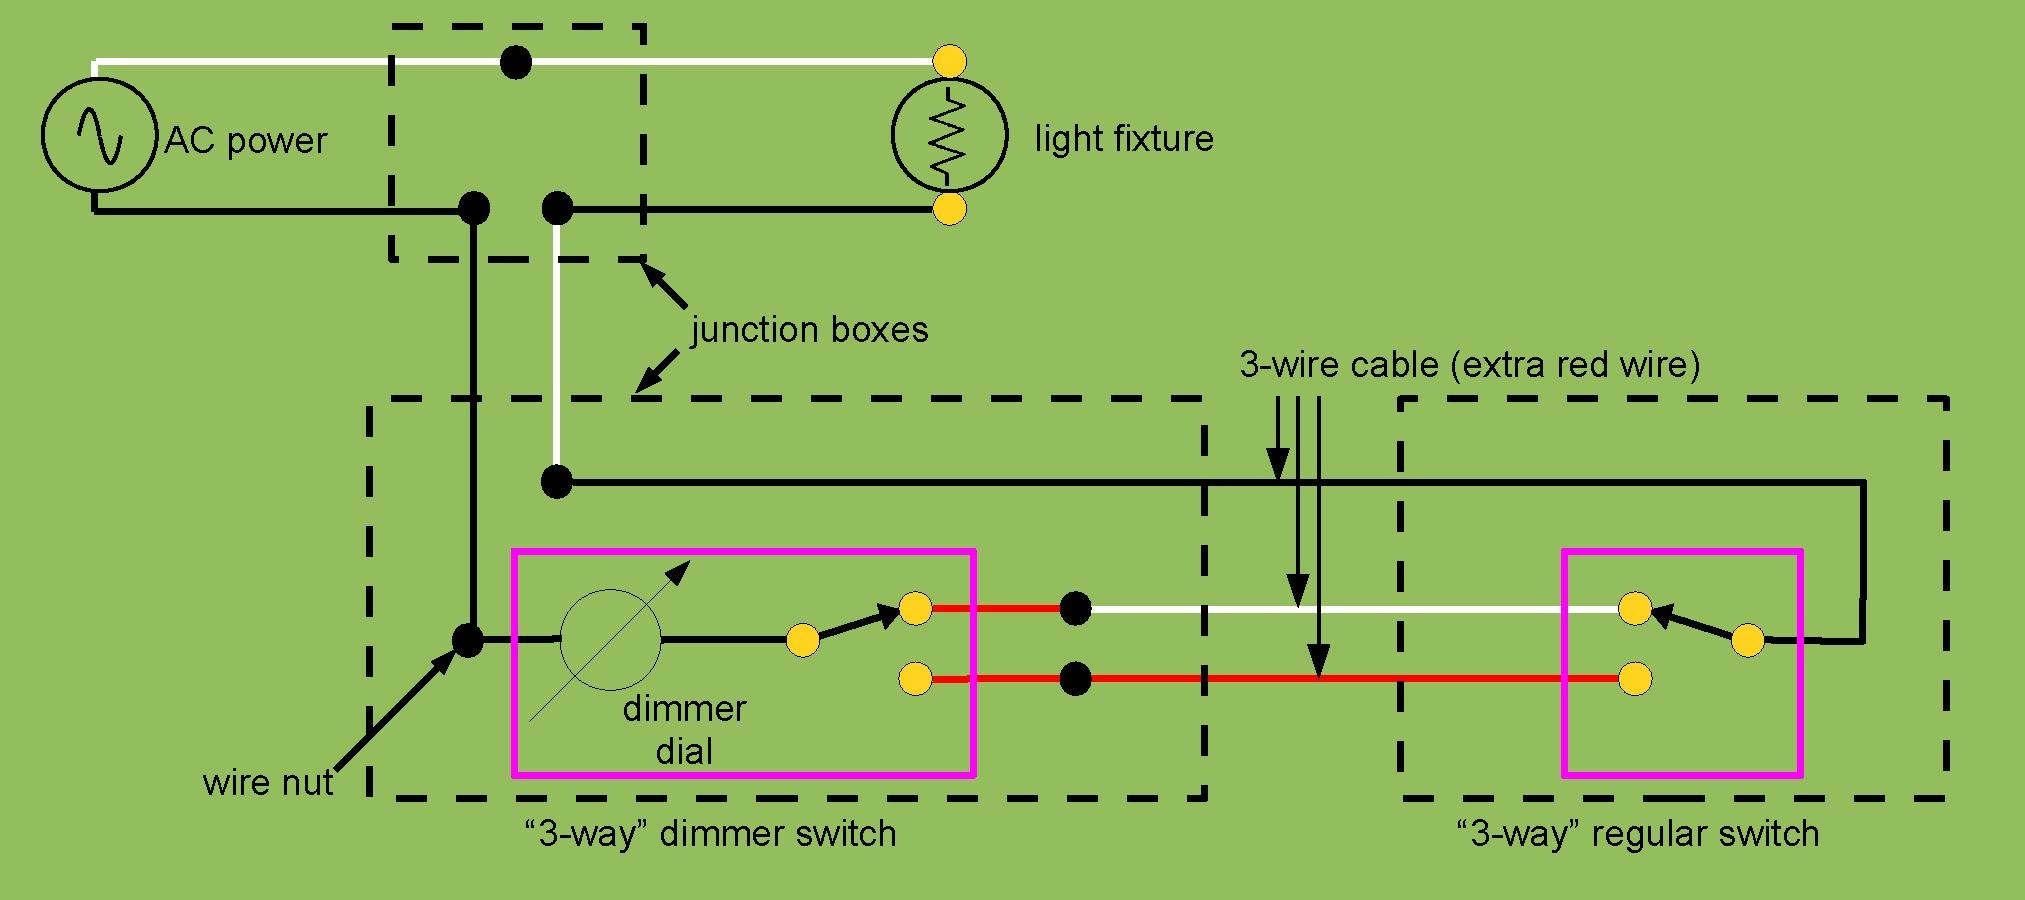 File:3-Way Dimmer Switch Wiring.pdf - Wikimedia Commons - 3 Way Dimmer Switches Wiring Diagram